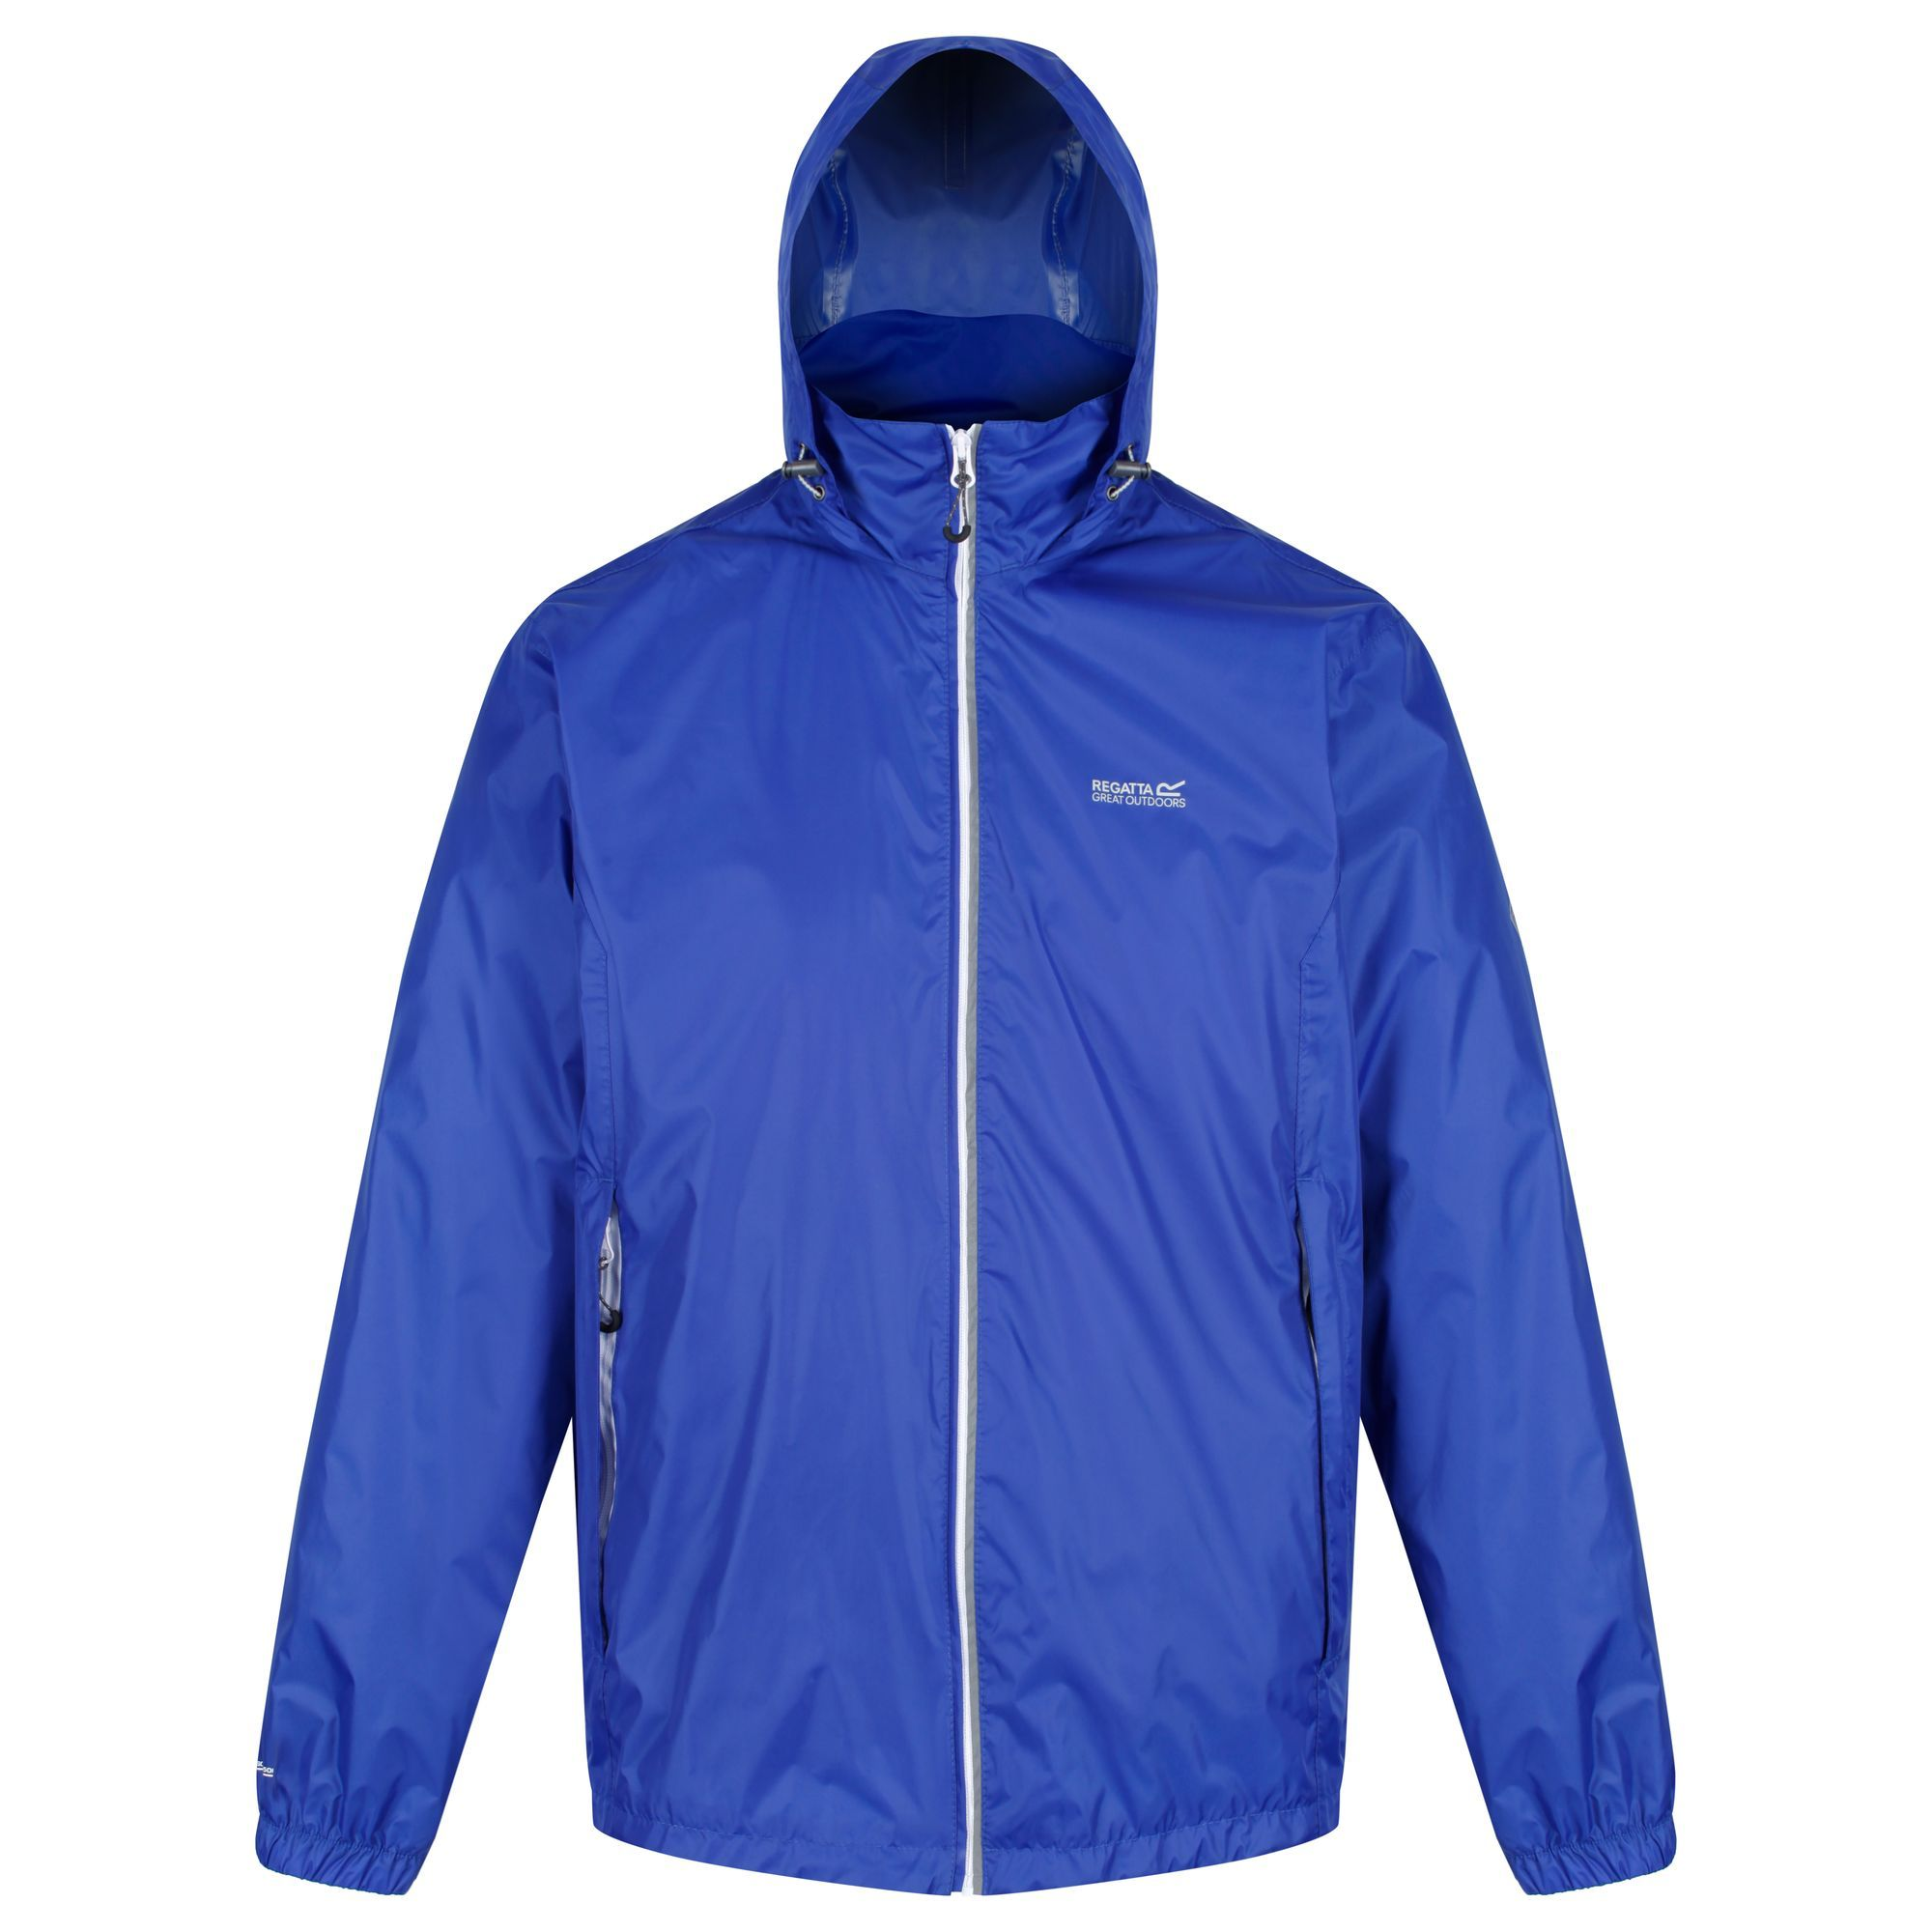 Mens-Regatta-Lightweight-Waterproof-Windproof-Jacket-Clearance-RRP-70-00 thumbnail 41